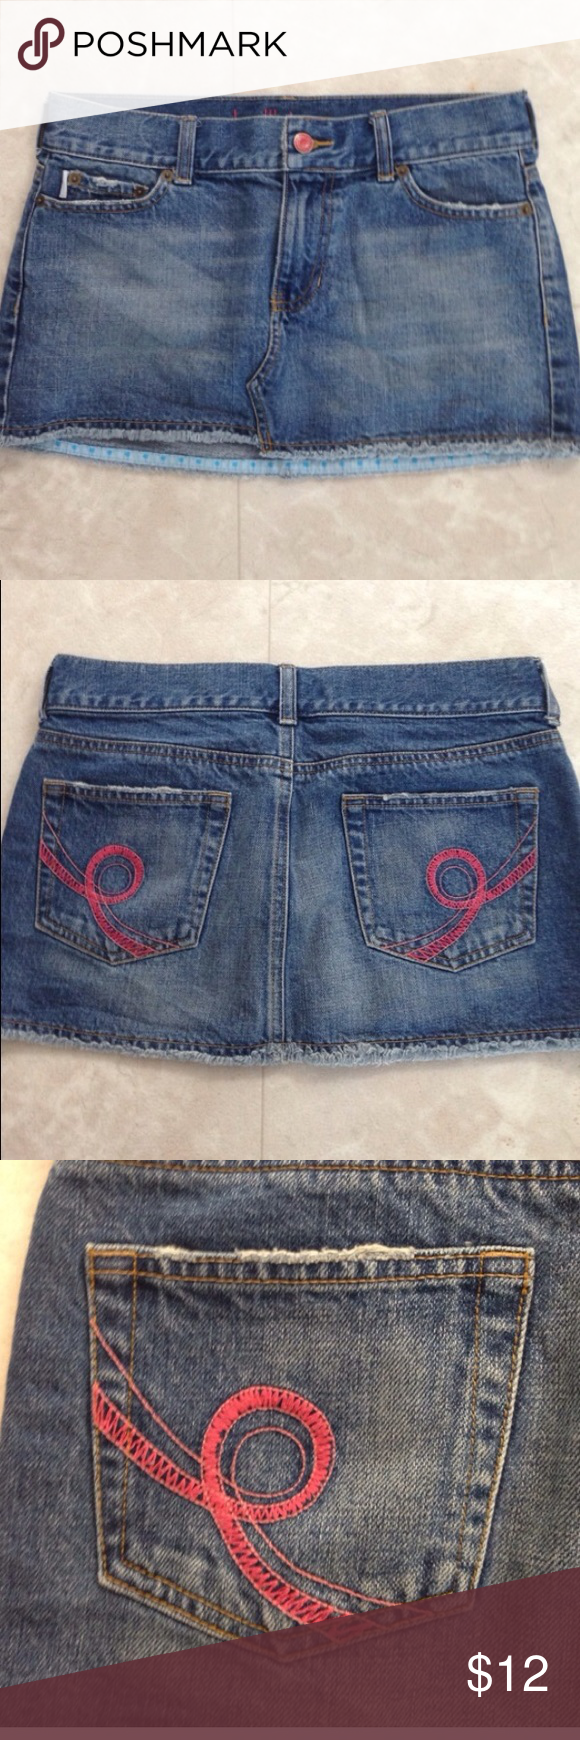 Hollister Distressed Mini Jean Skirt Pink stitching. Frayed bottom. Excellent condition. Hollister Skirts Mini